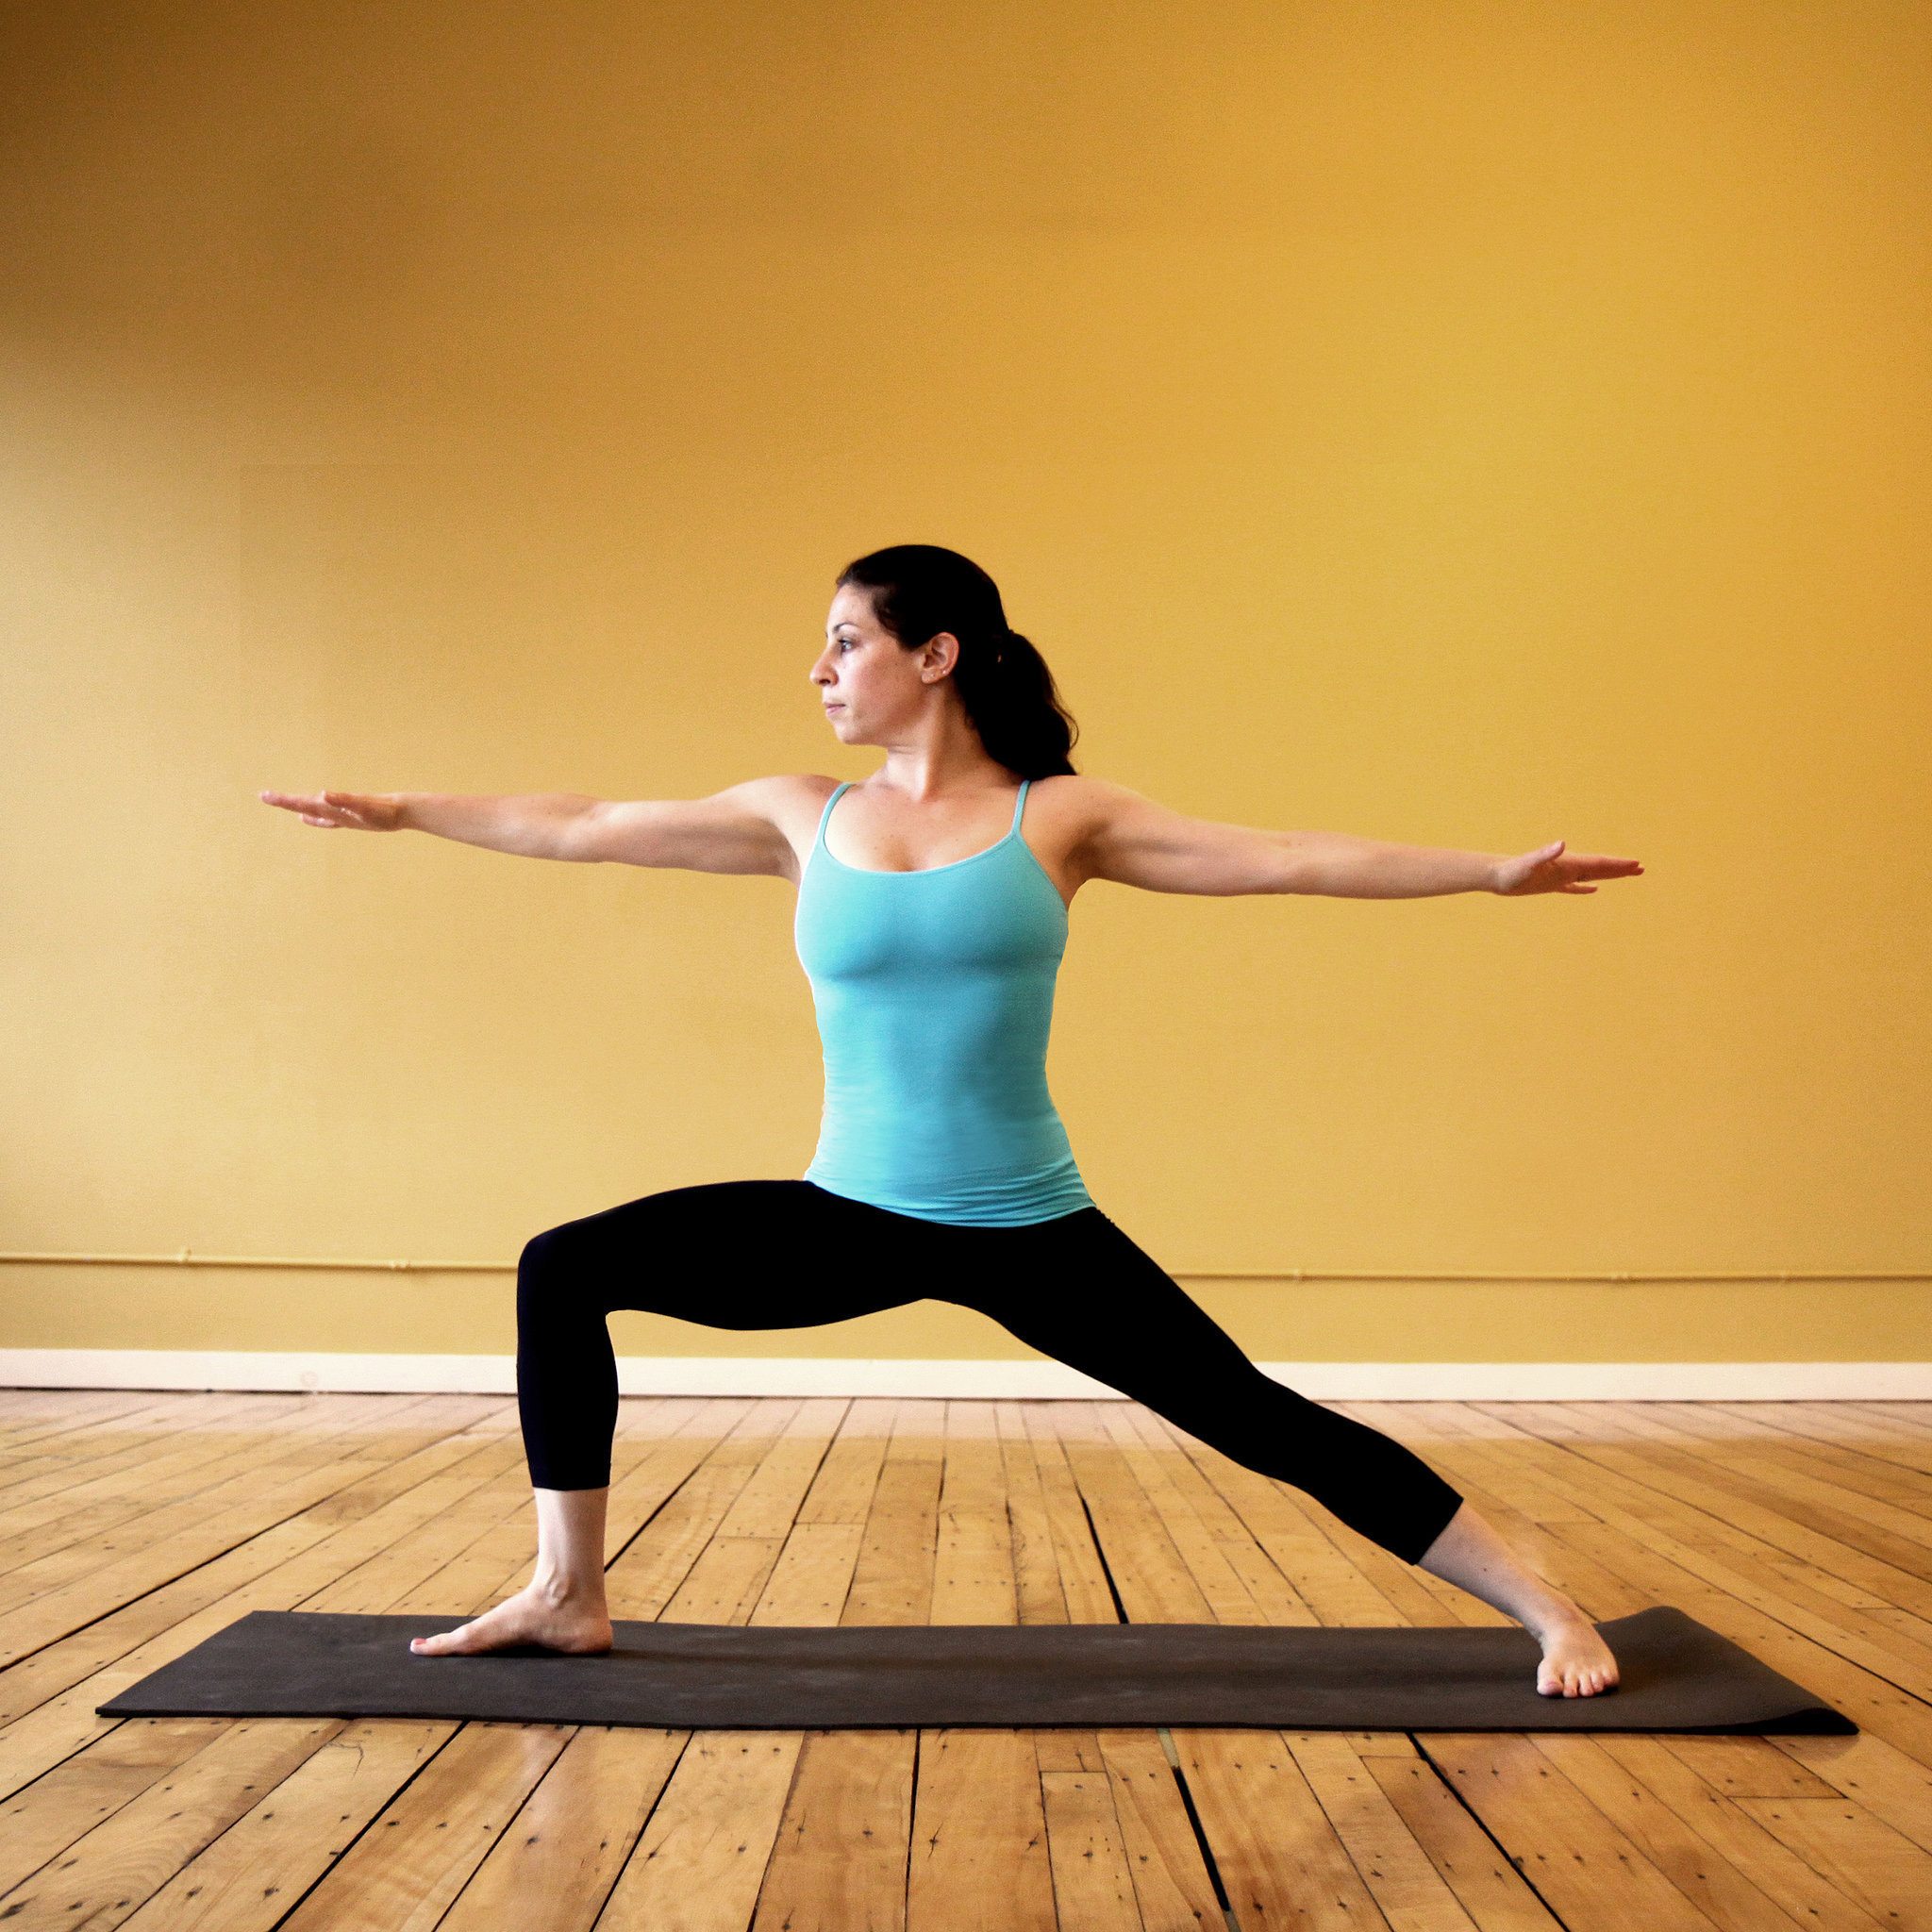 5 Beginner Yoga Poses to Try On Weed